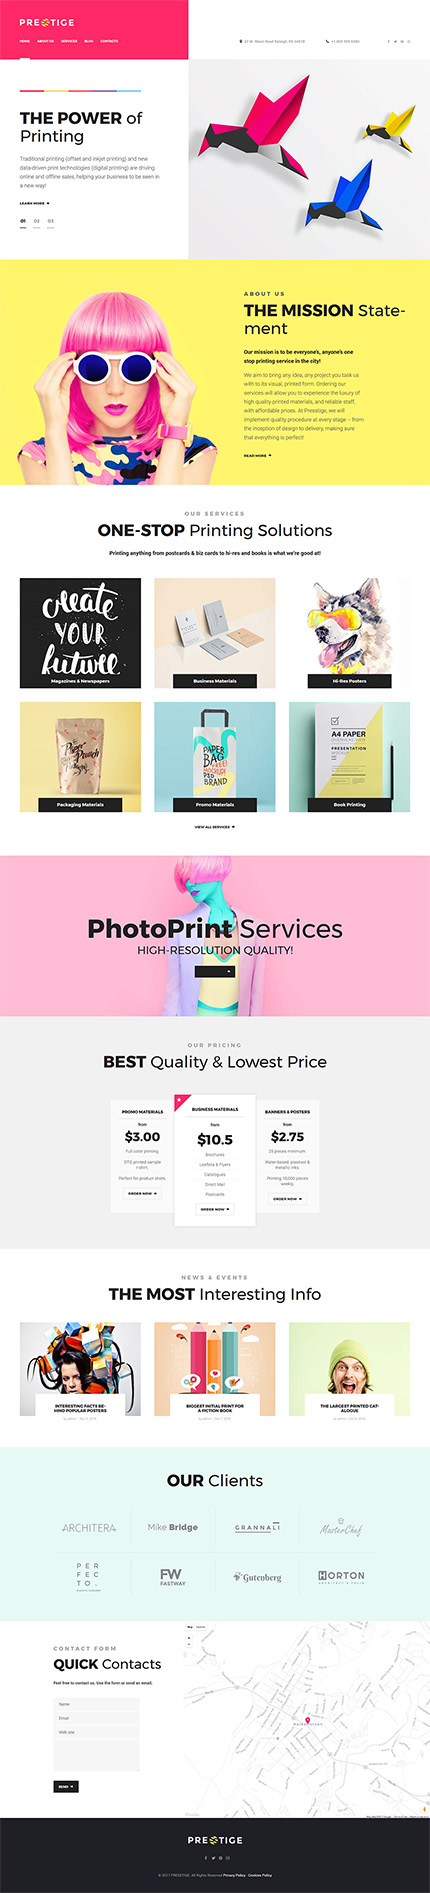 Art & Photography Most Popular website inspirations at your coffee break? Browse for more WordPress #templates! // Regular price: $75 // Sources available:.PHP, This theme is widgetized #Art & Photography #Most Popular #WordPress